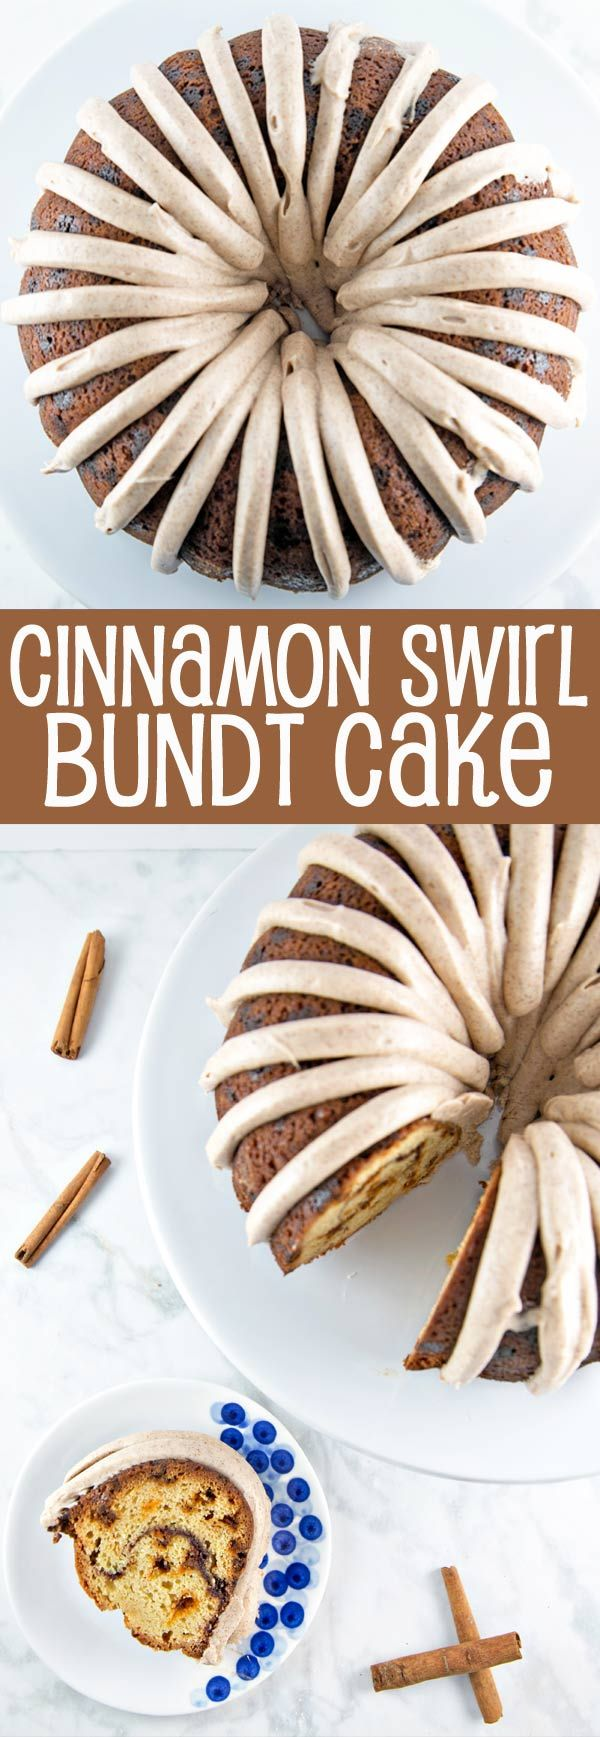 Cinnamon Swirl Bundt Cake: one bowl, whisk by hand, with cinnamon cream cheese frosting. Plus tips for the BEST cake from a boxed cake mix! {Bunsen Burner Bakery} #ad https://ooh.li/4c70eab